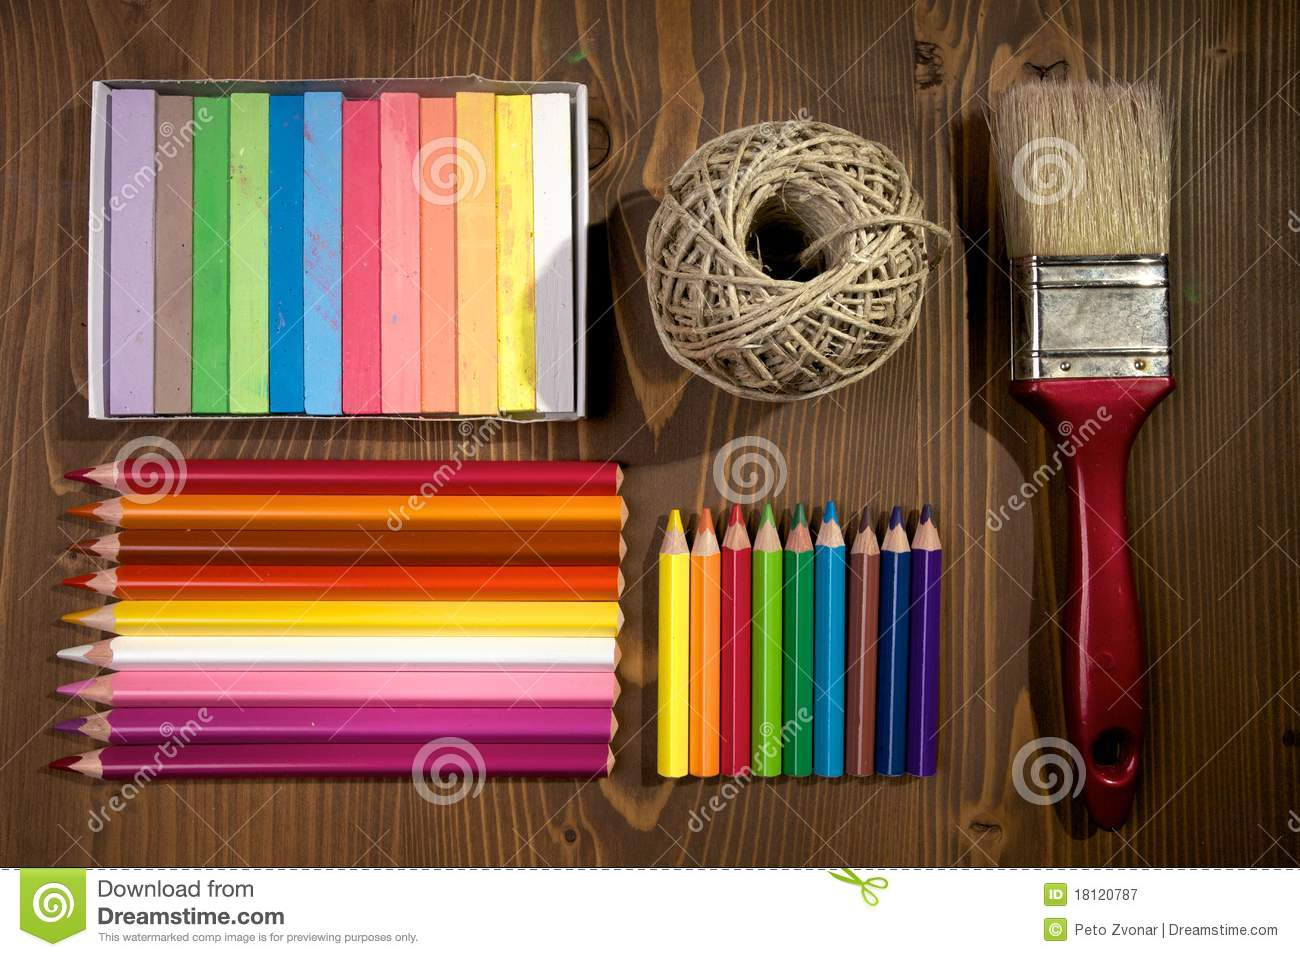 Arts And Crafts Stock Image Image Of Paintbrush. Gray And Brown Living Room Ideas. Traditional Living Rooms. Live Chat Room Number. Living Room Wooden Furniture Photos. Pictures Of White Living Rooms. Furniture Design For Living Room. Cosy Living Room Designs. Furniture Living Room Sets Cheap